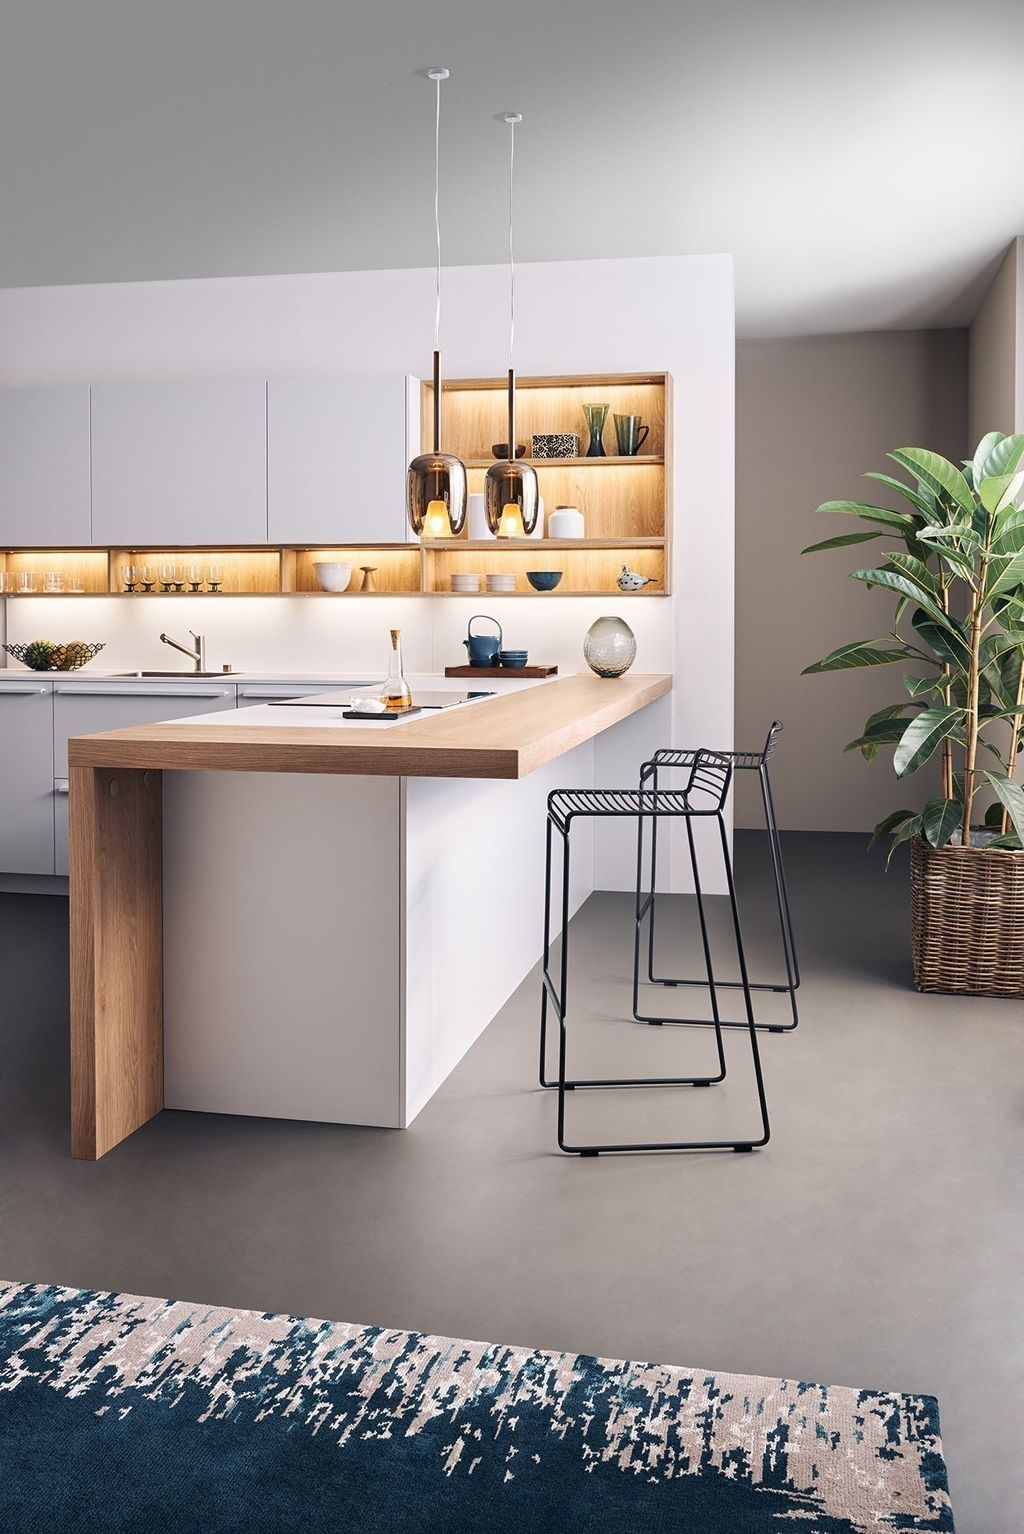 Wonderful Kitchen Design Ideas That Are Actually Useful46